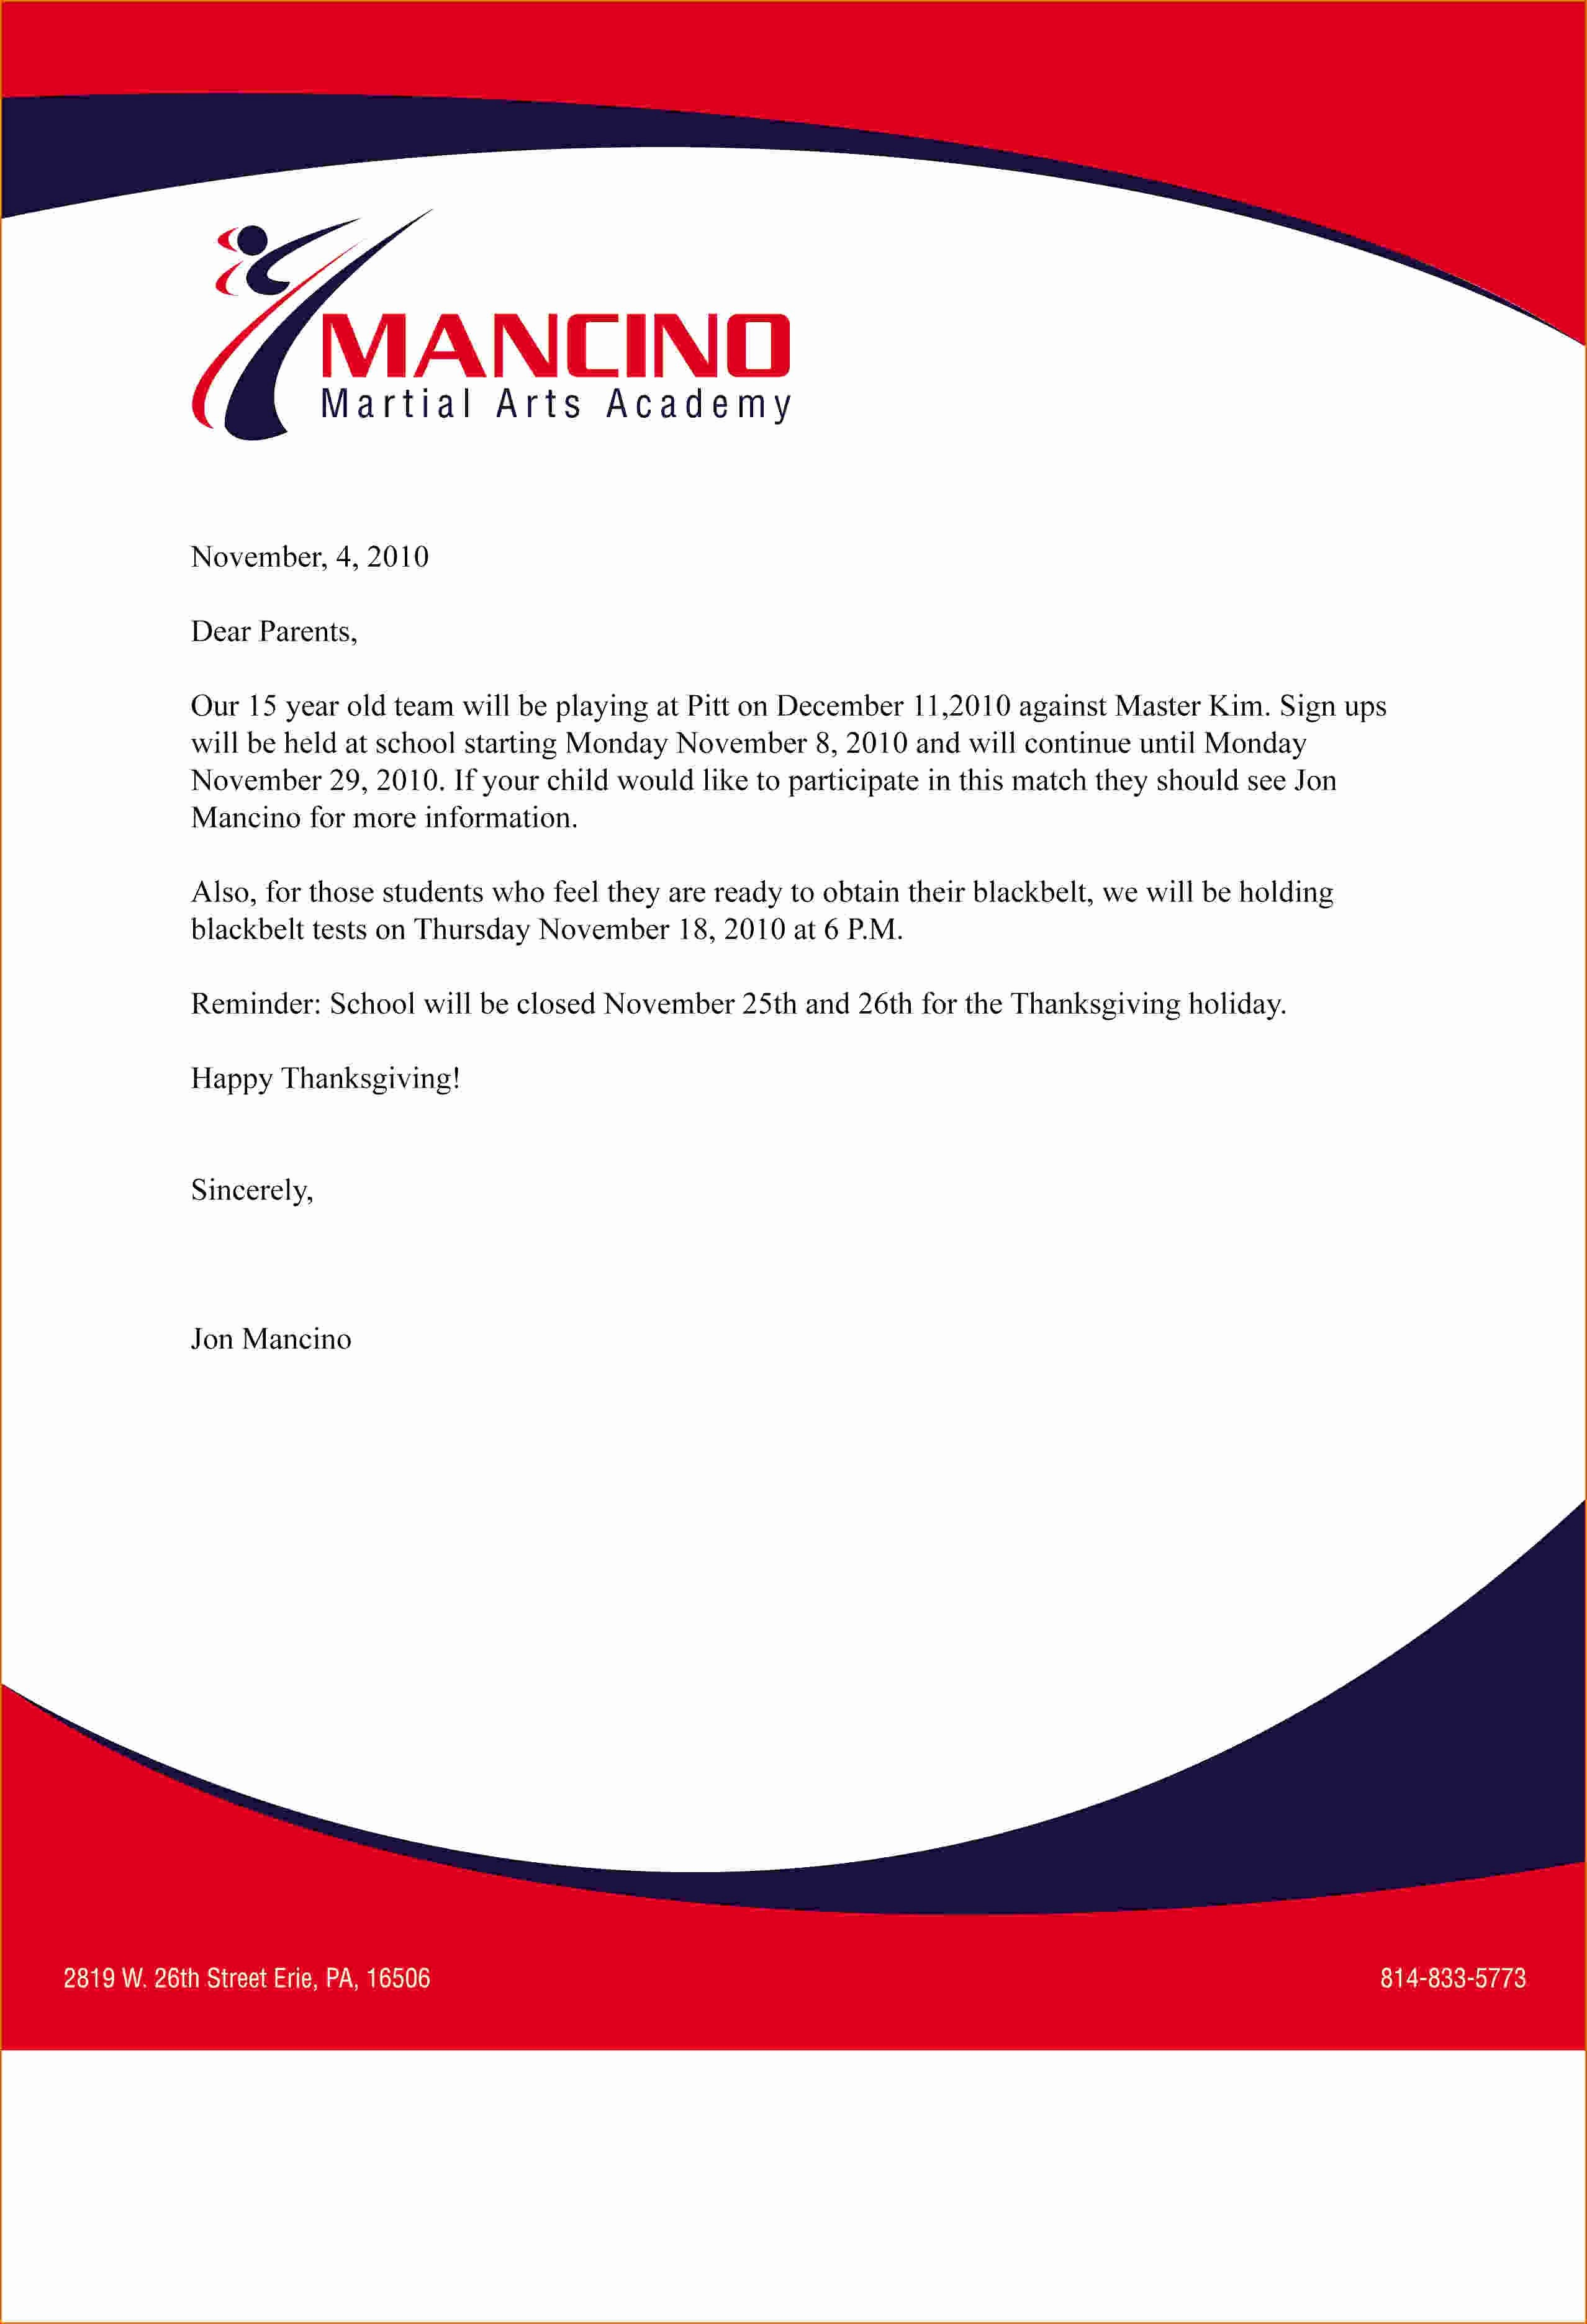 Examples Of Letterheads for Business Lovely Pin by Amirah Dayana On Letterhead